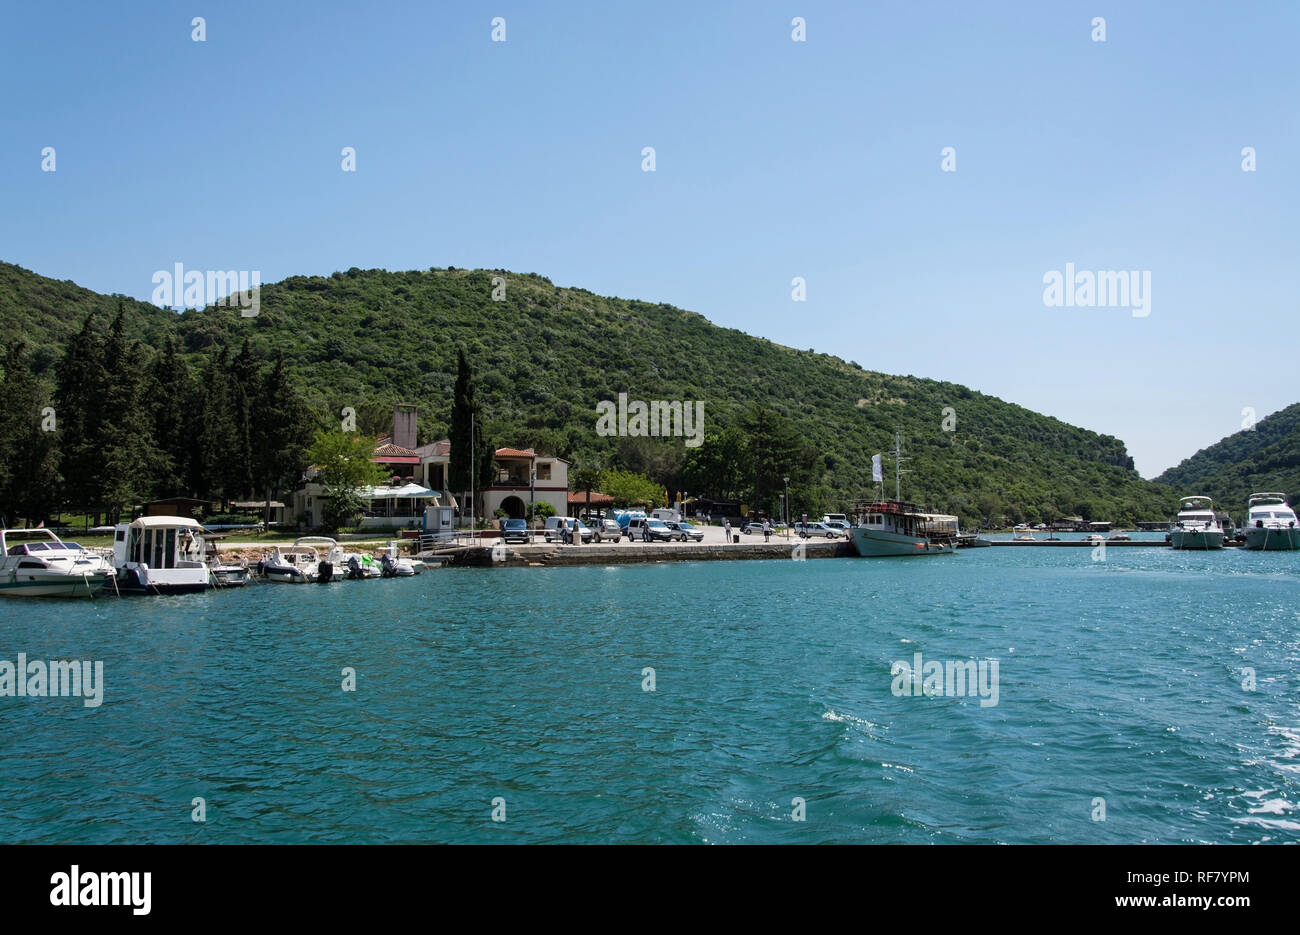 The Limski canal is a narrow inlet between Vrsar and Rovinj on the west coast Istriens in Croatia. Geologically it does not concern with the Limski ca - Stock Image